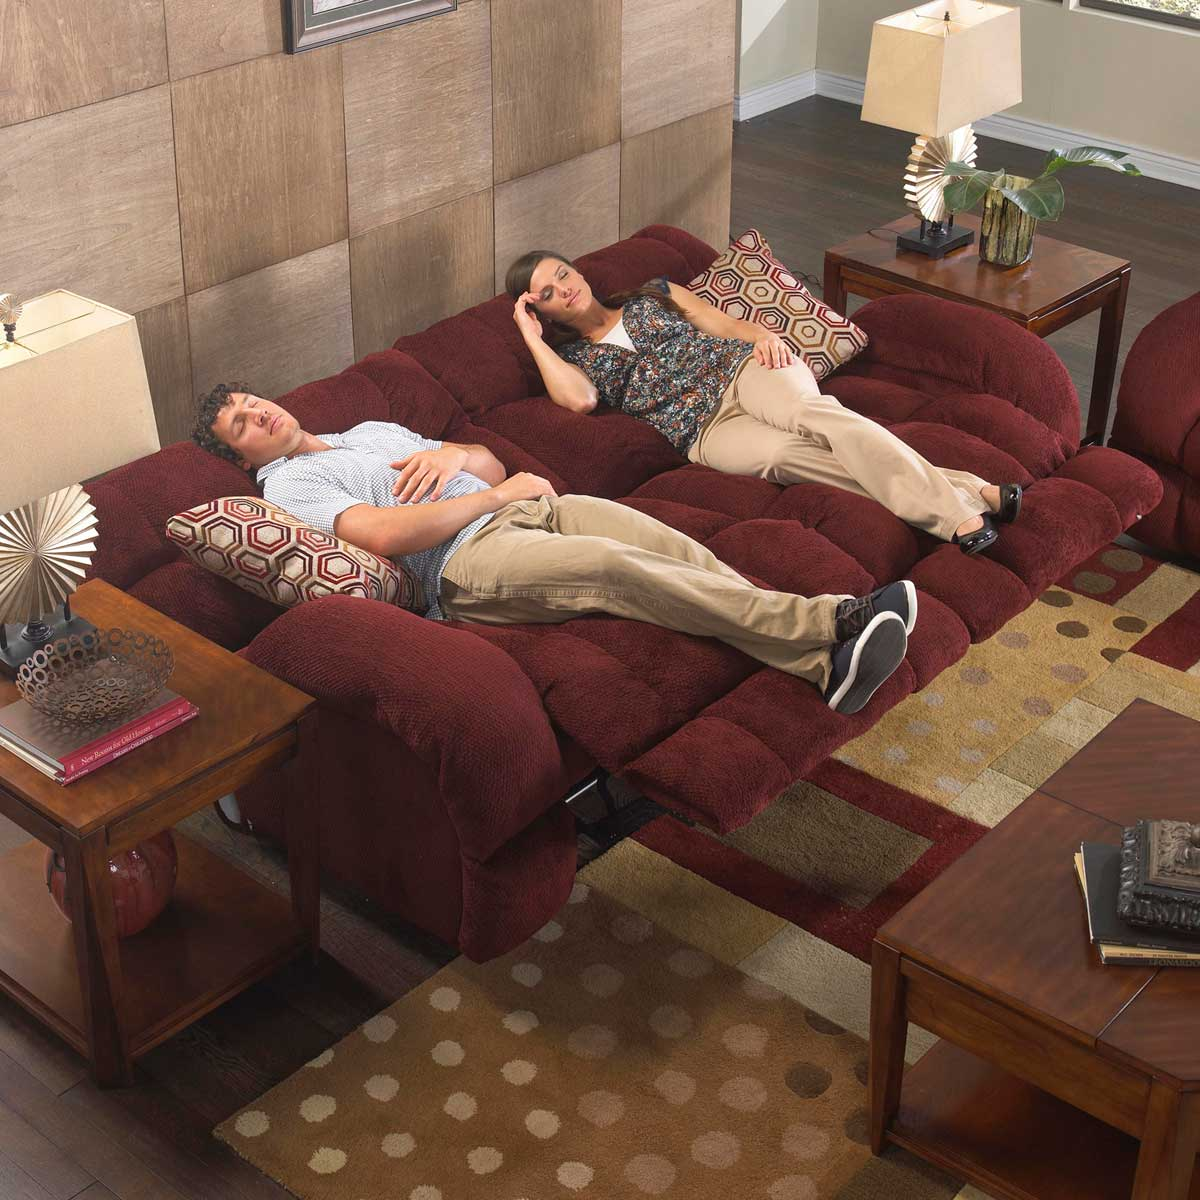 CatNapper Siesta Lay Flat Reclining Sofa Set - Wine